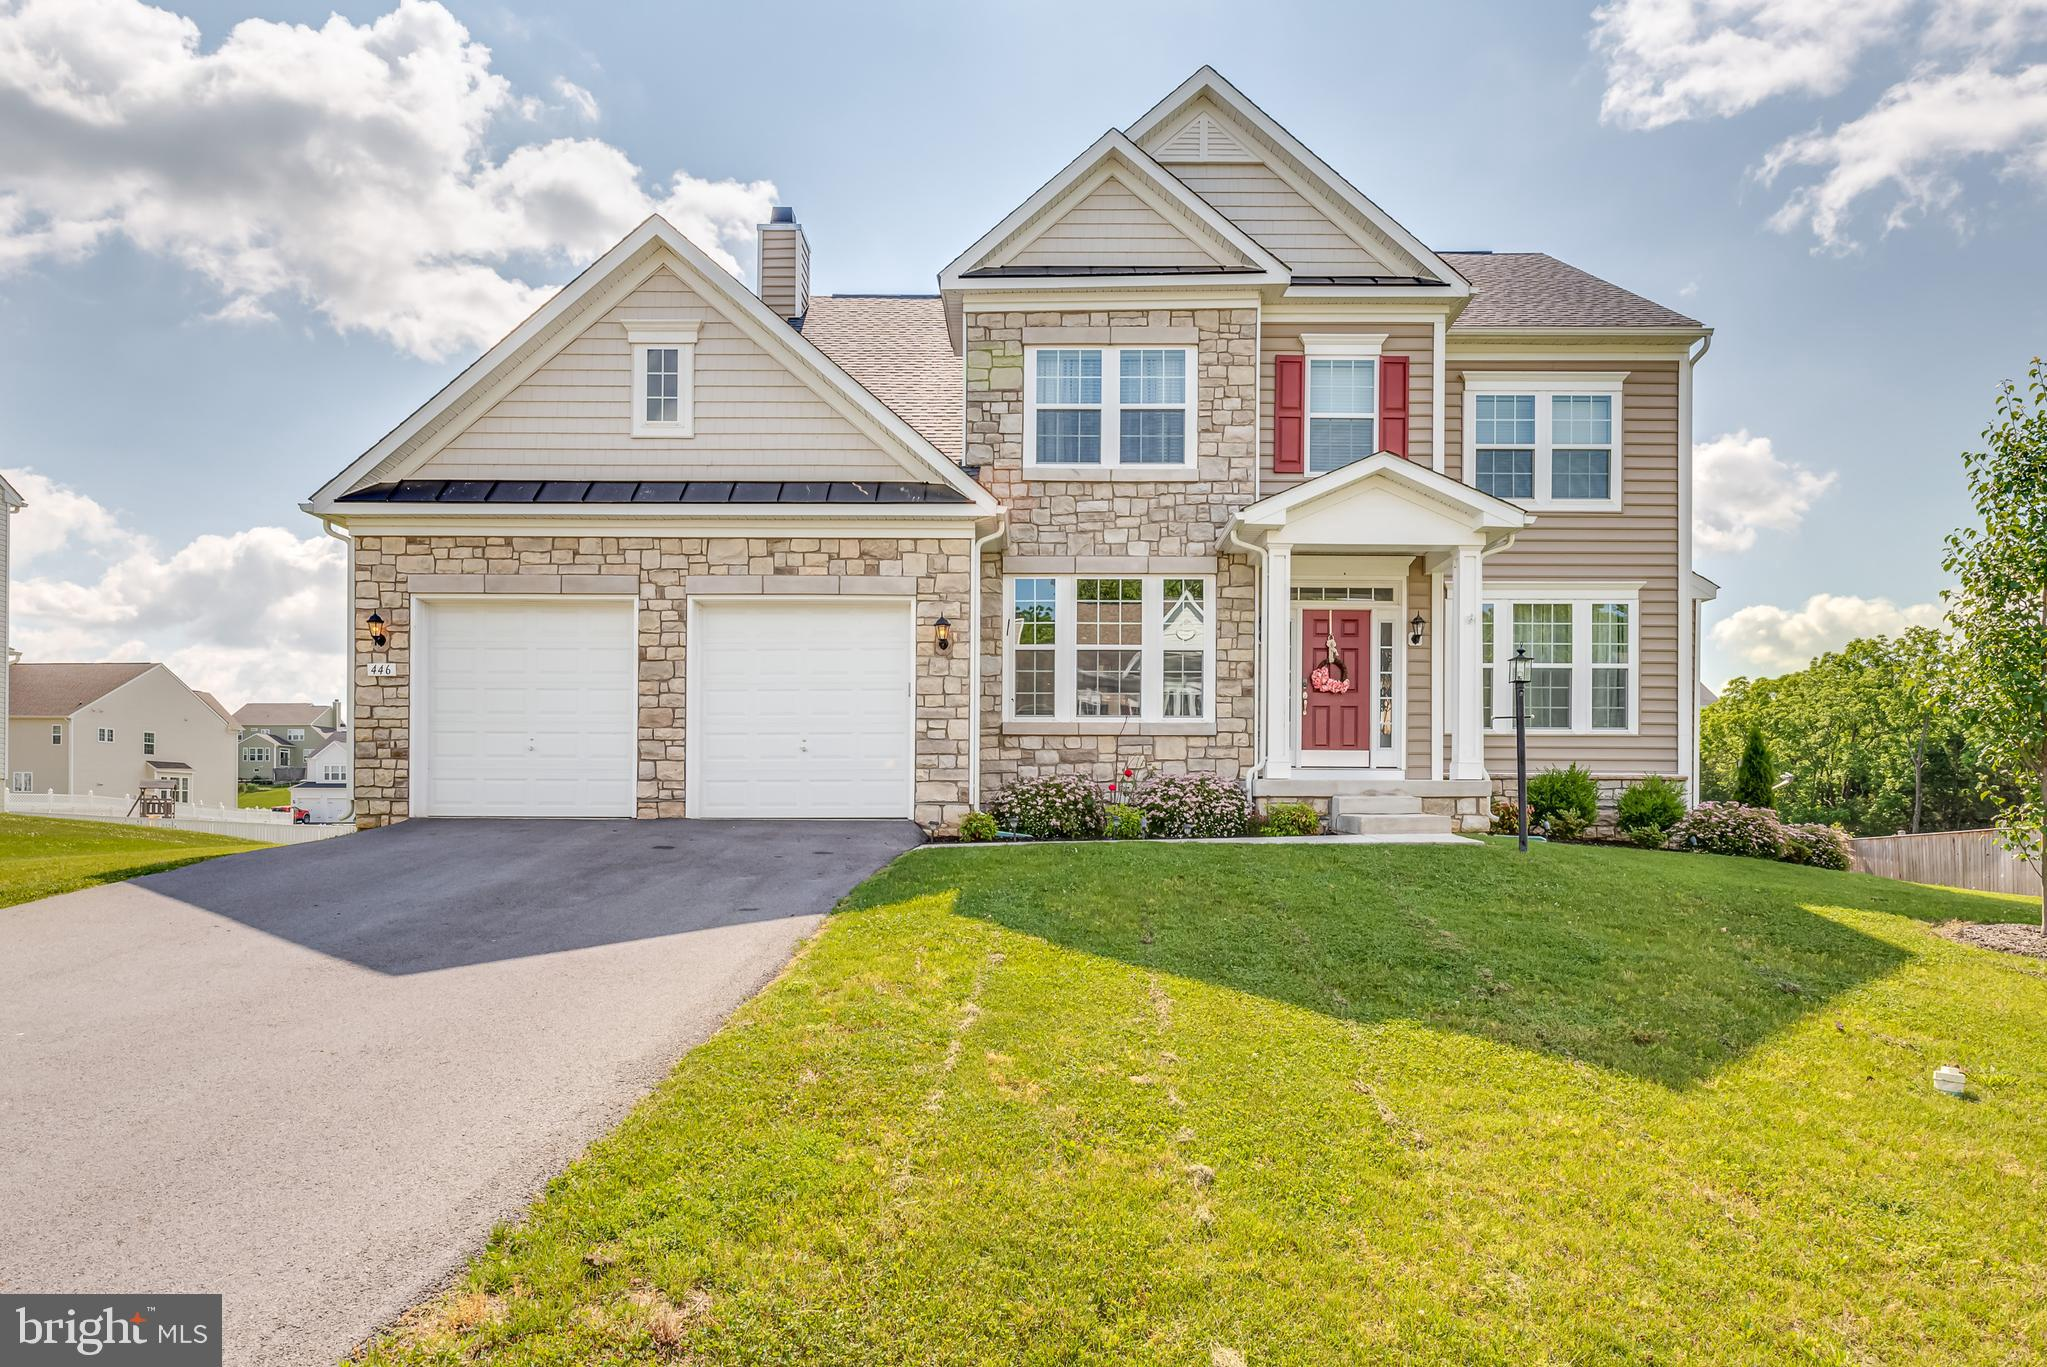 446 CHICKAMAUGA DRIVE, HARPERS FERRY, WV 25425